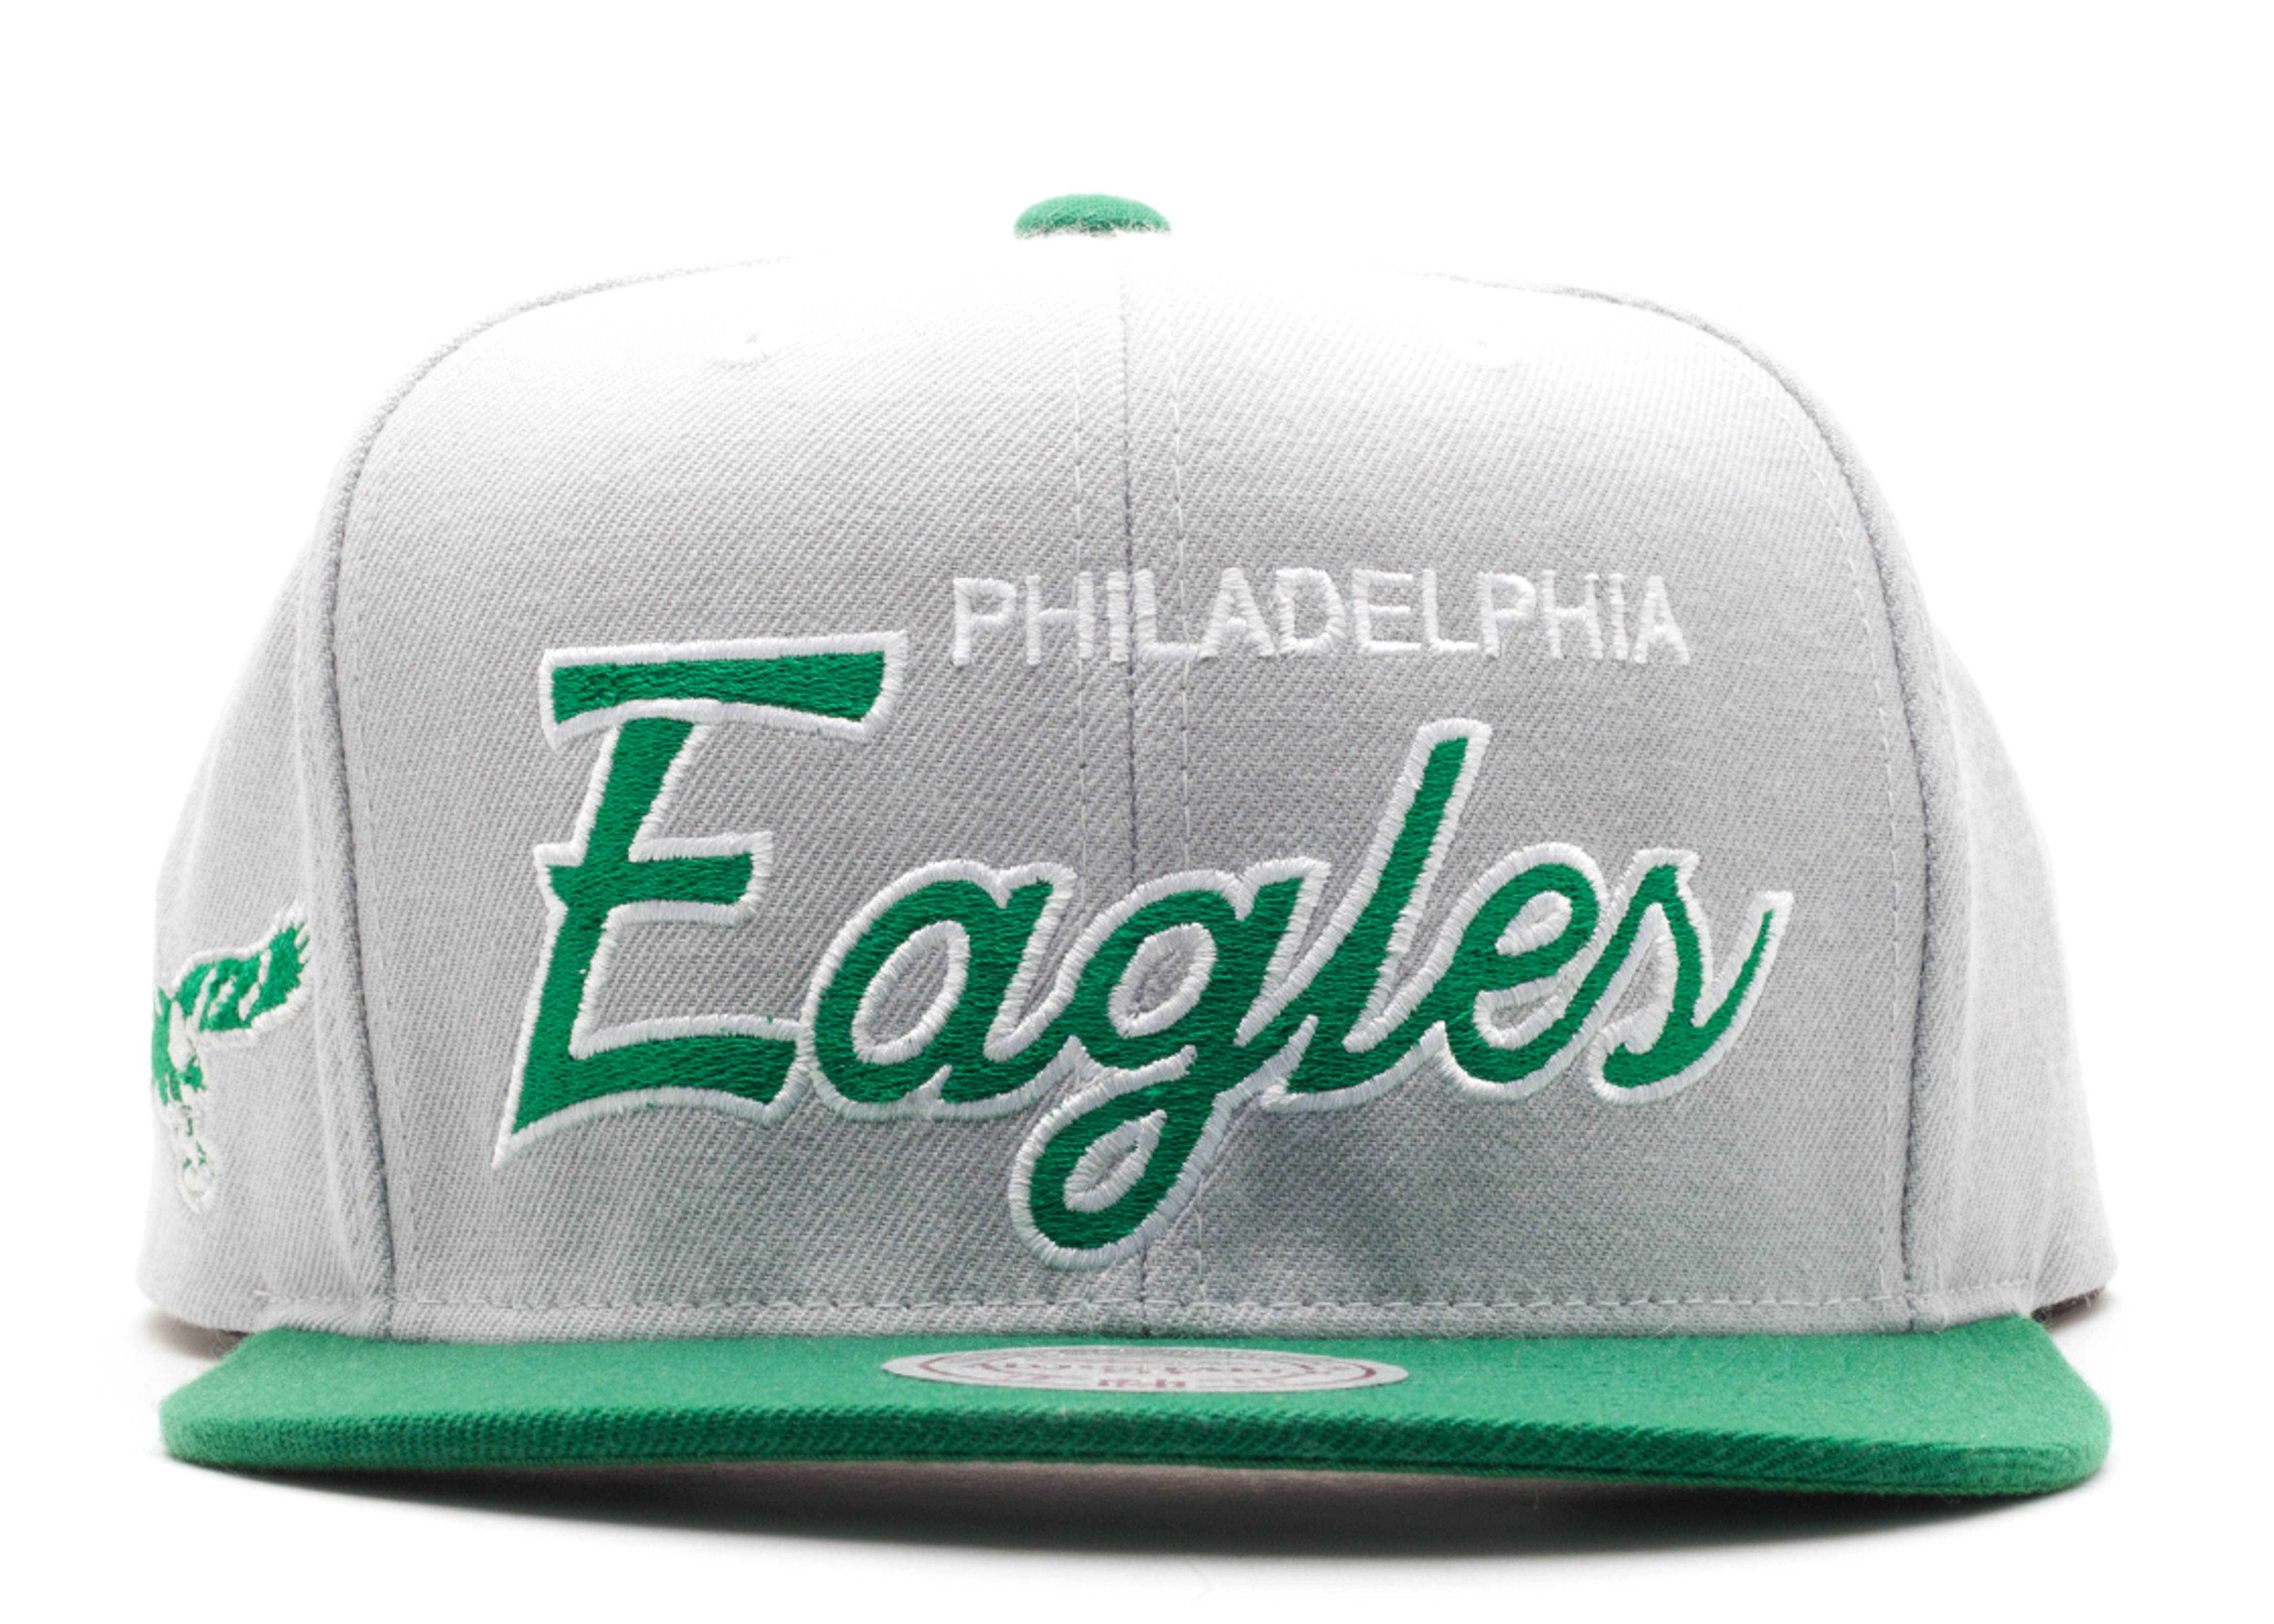 philadelphia eagles snap-back